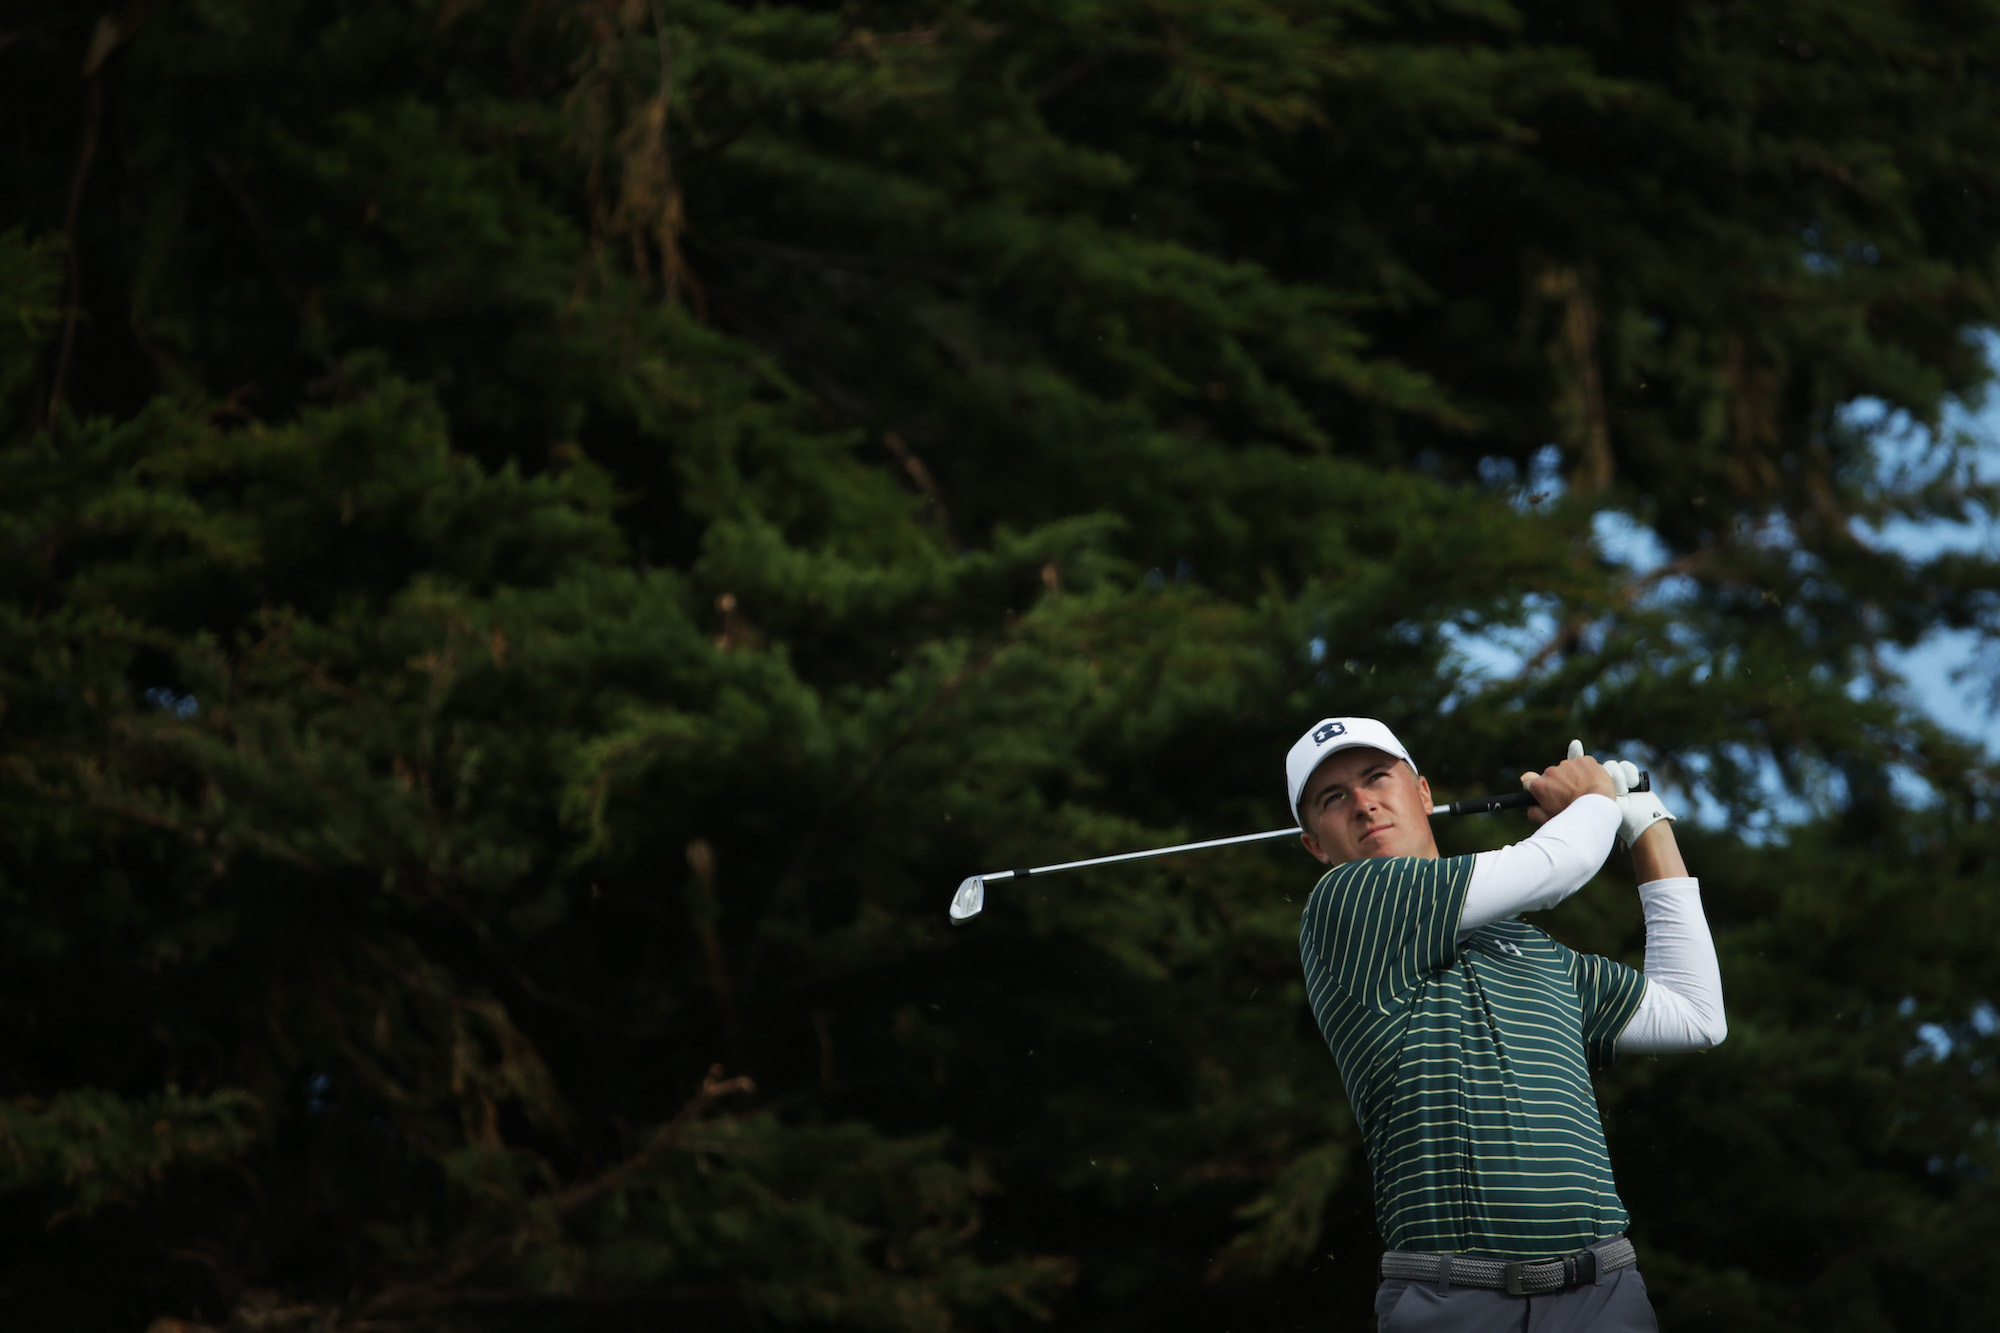 2019 AT&T Pebble Beach Pro-Am: Round 1 - Shot on No. 15